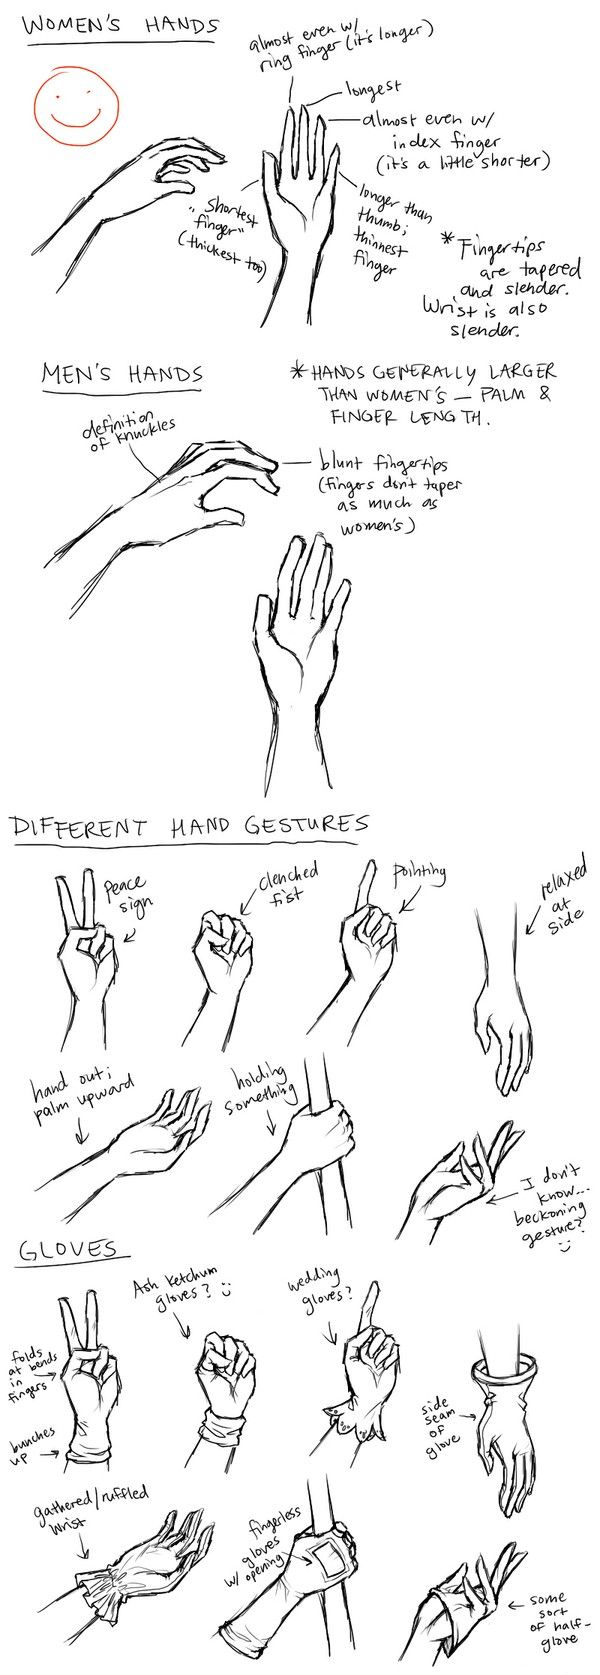 Im terrible at drawing hands so this is pretty useful especially how it does both male and female hands